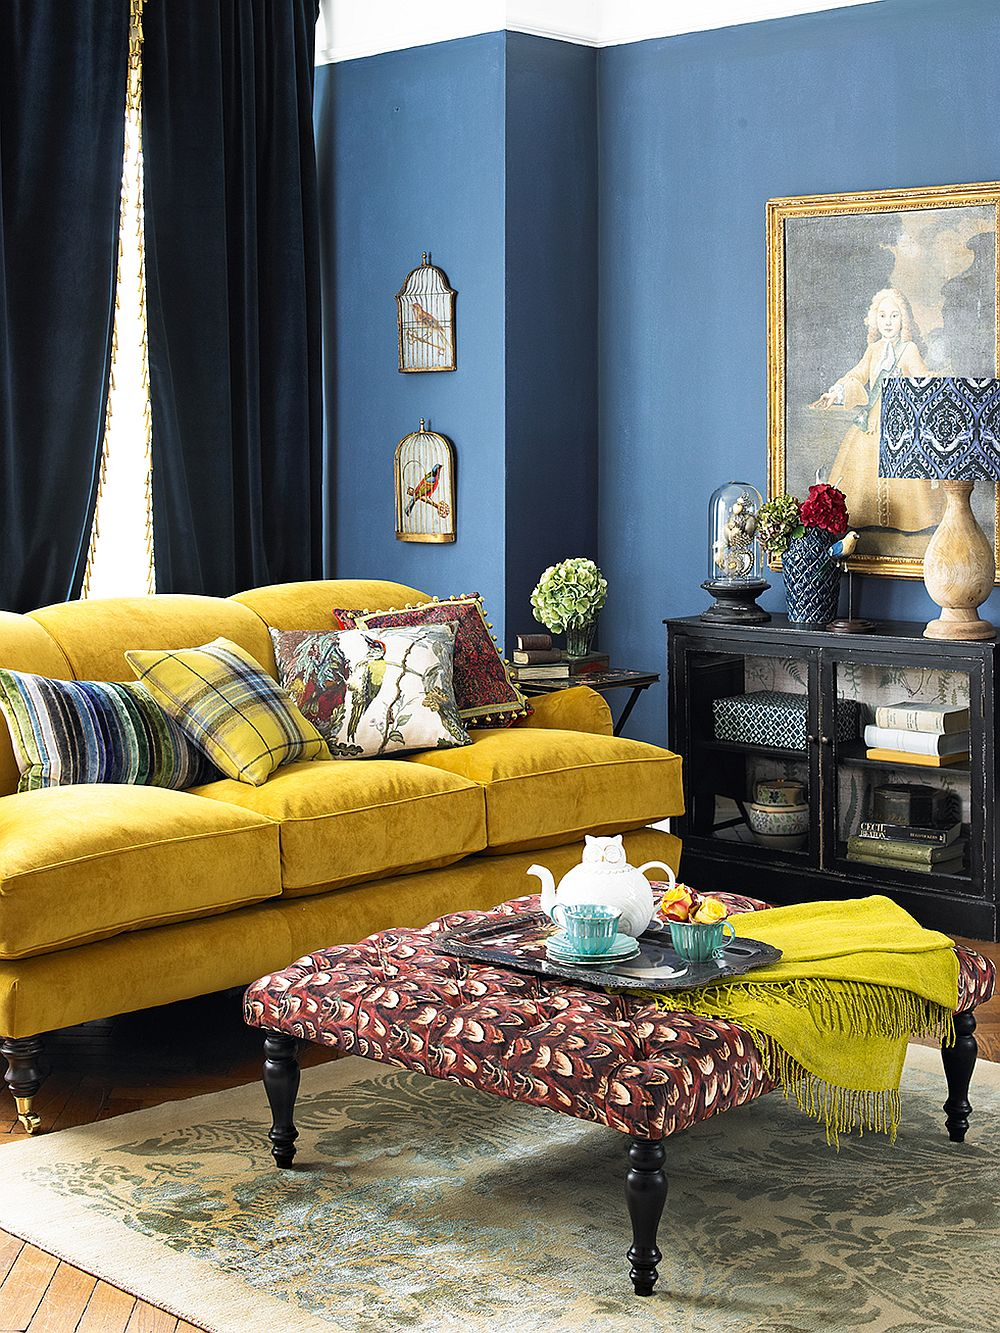 Blue and yellow living room idea